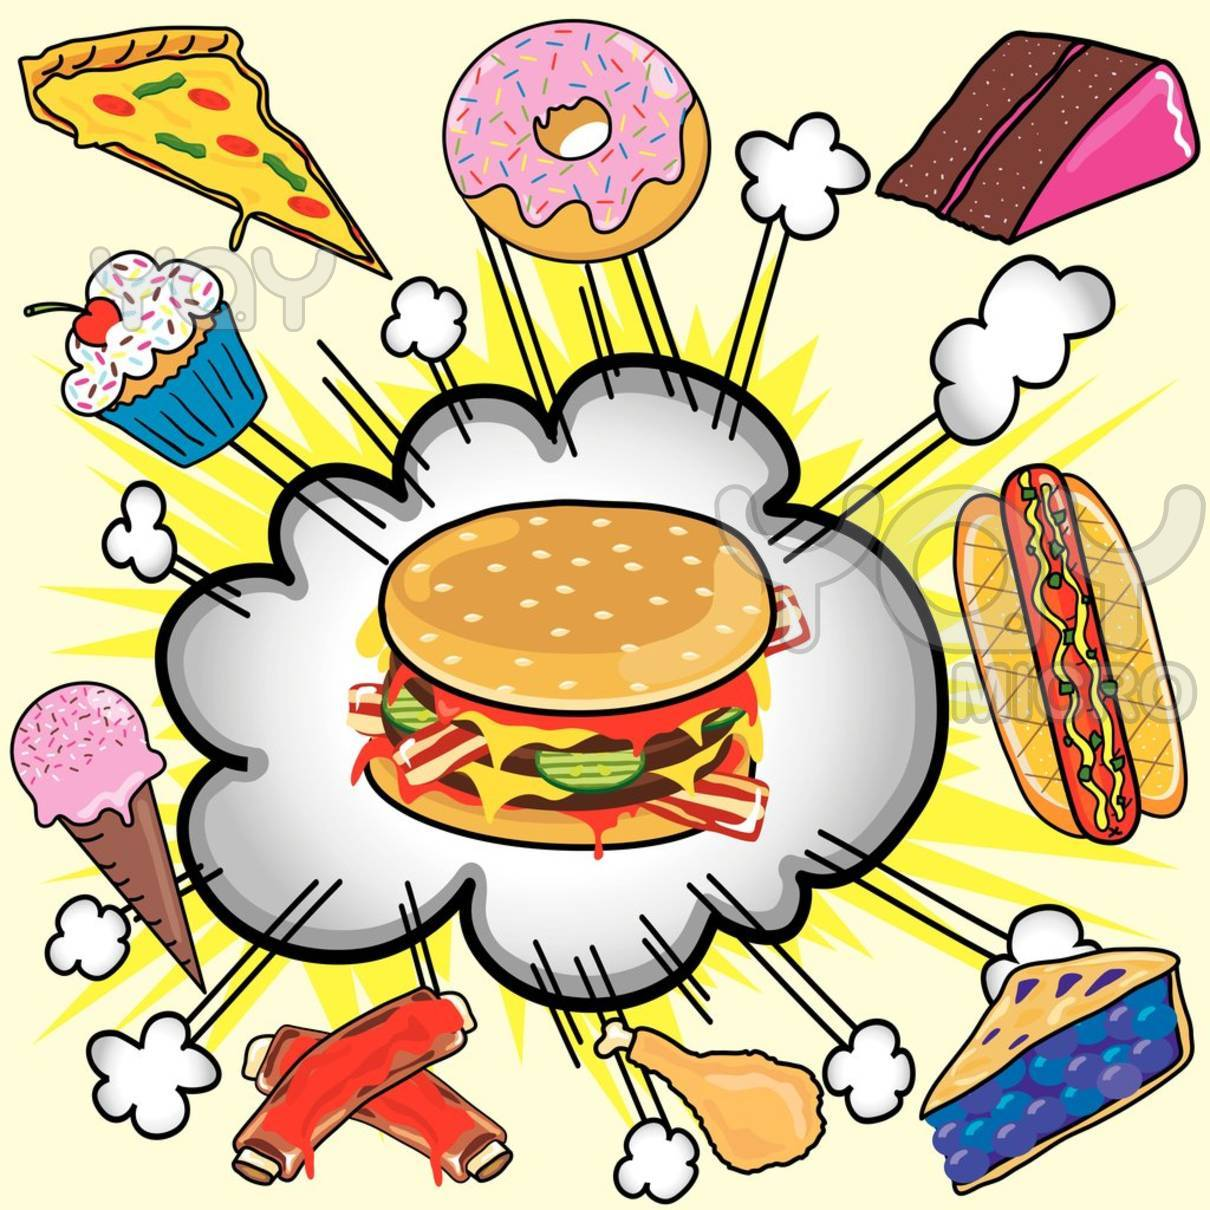 1210x1210 Junk Food Explosion 648959 Genetic Literacy Project